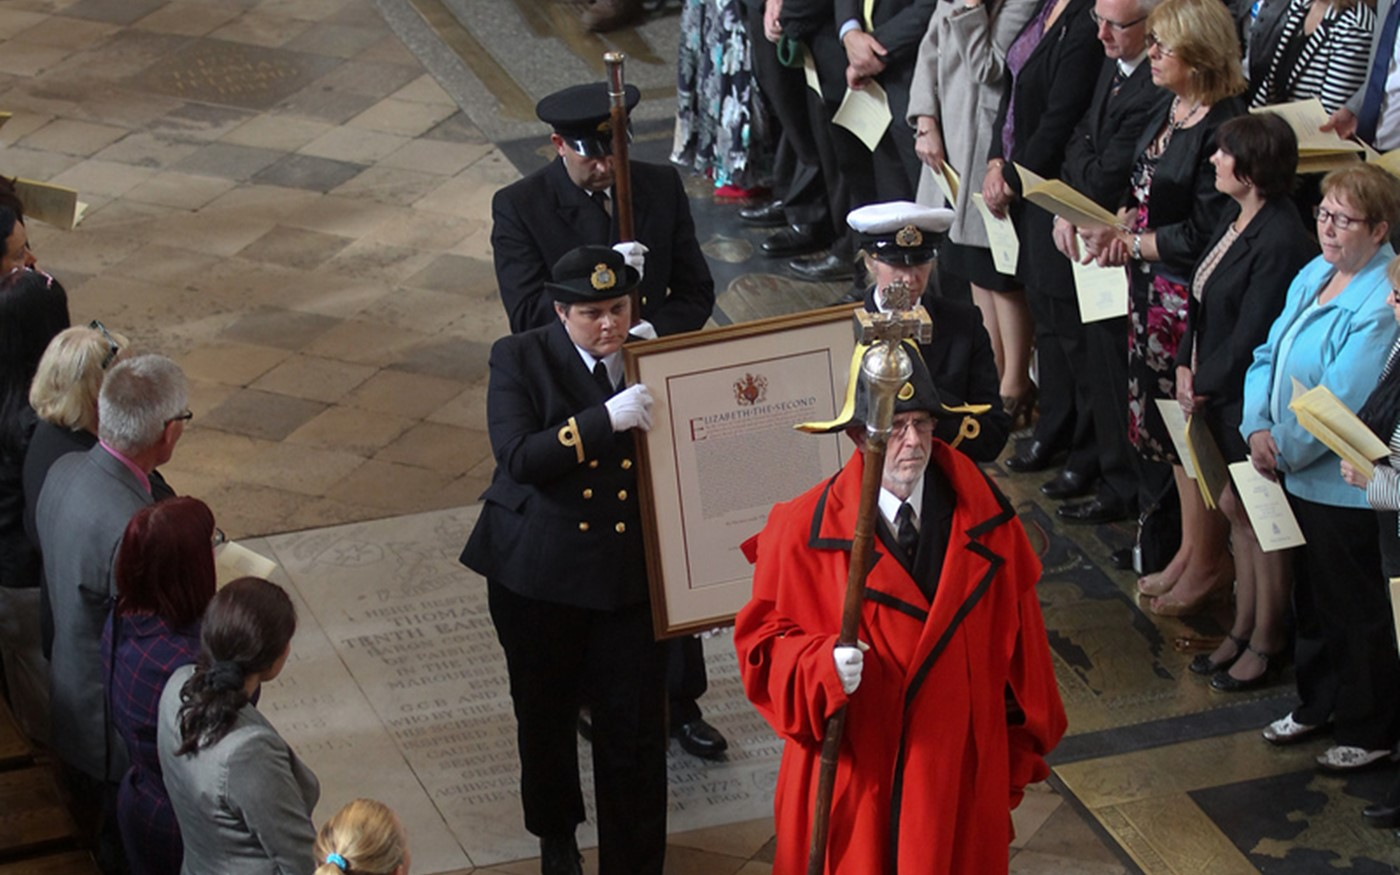 The Royal Charter is borne through the Abbey